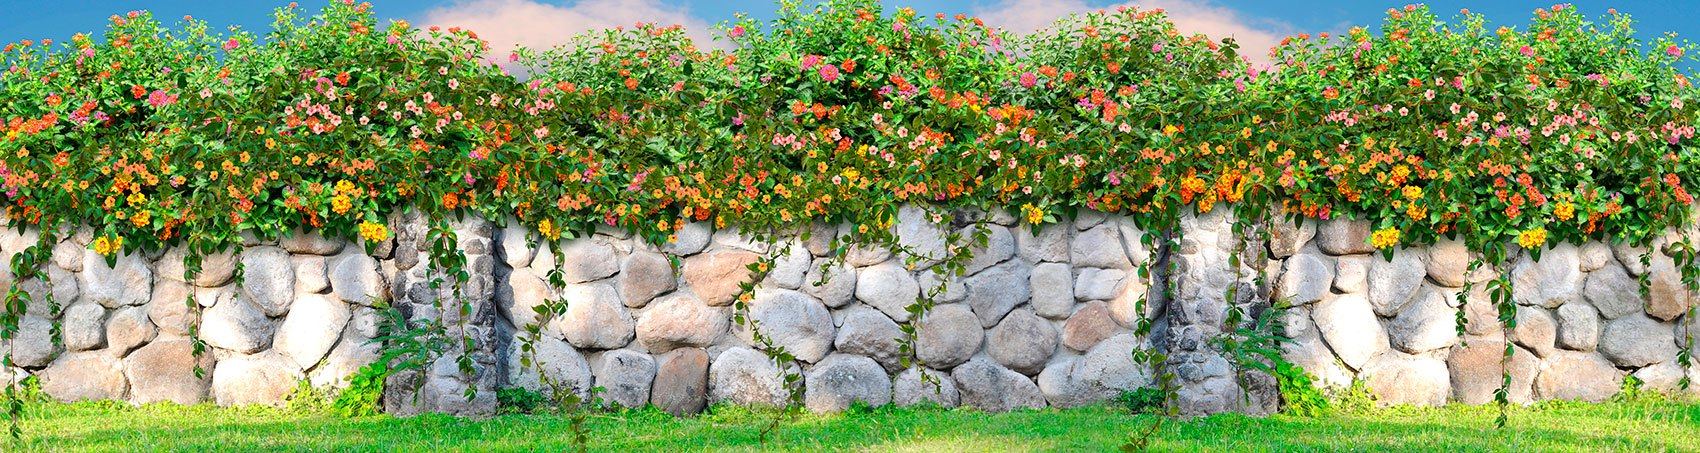 Wall Murals: Wall of flowers